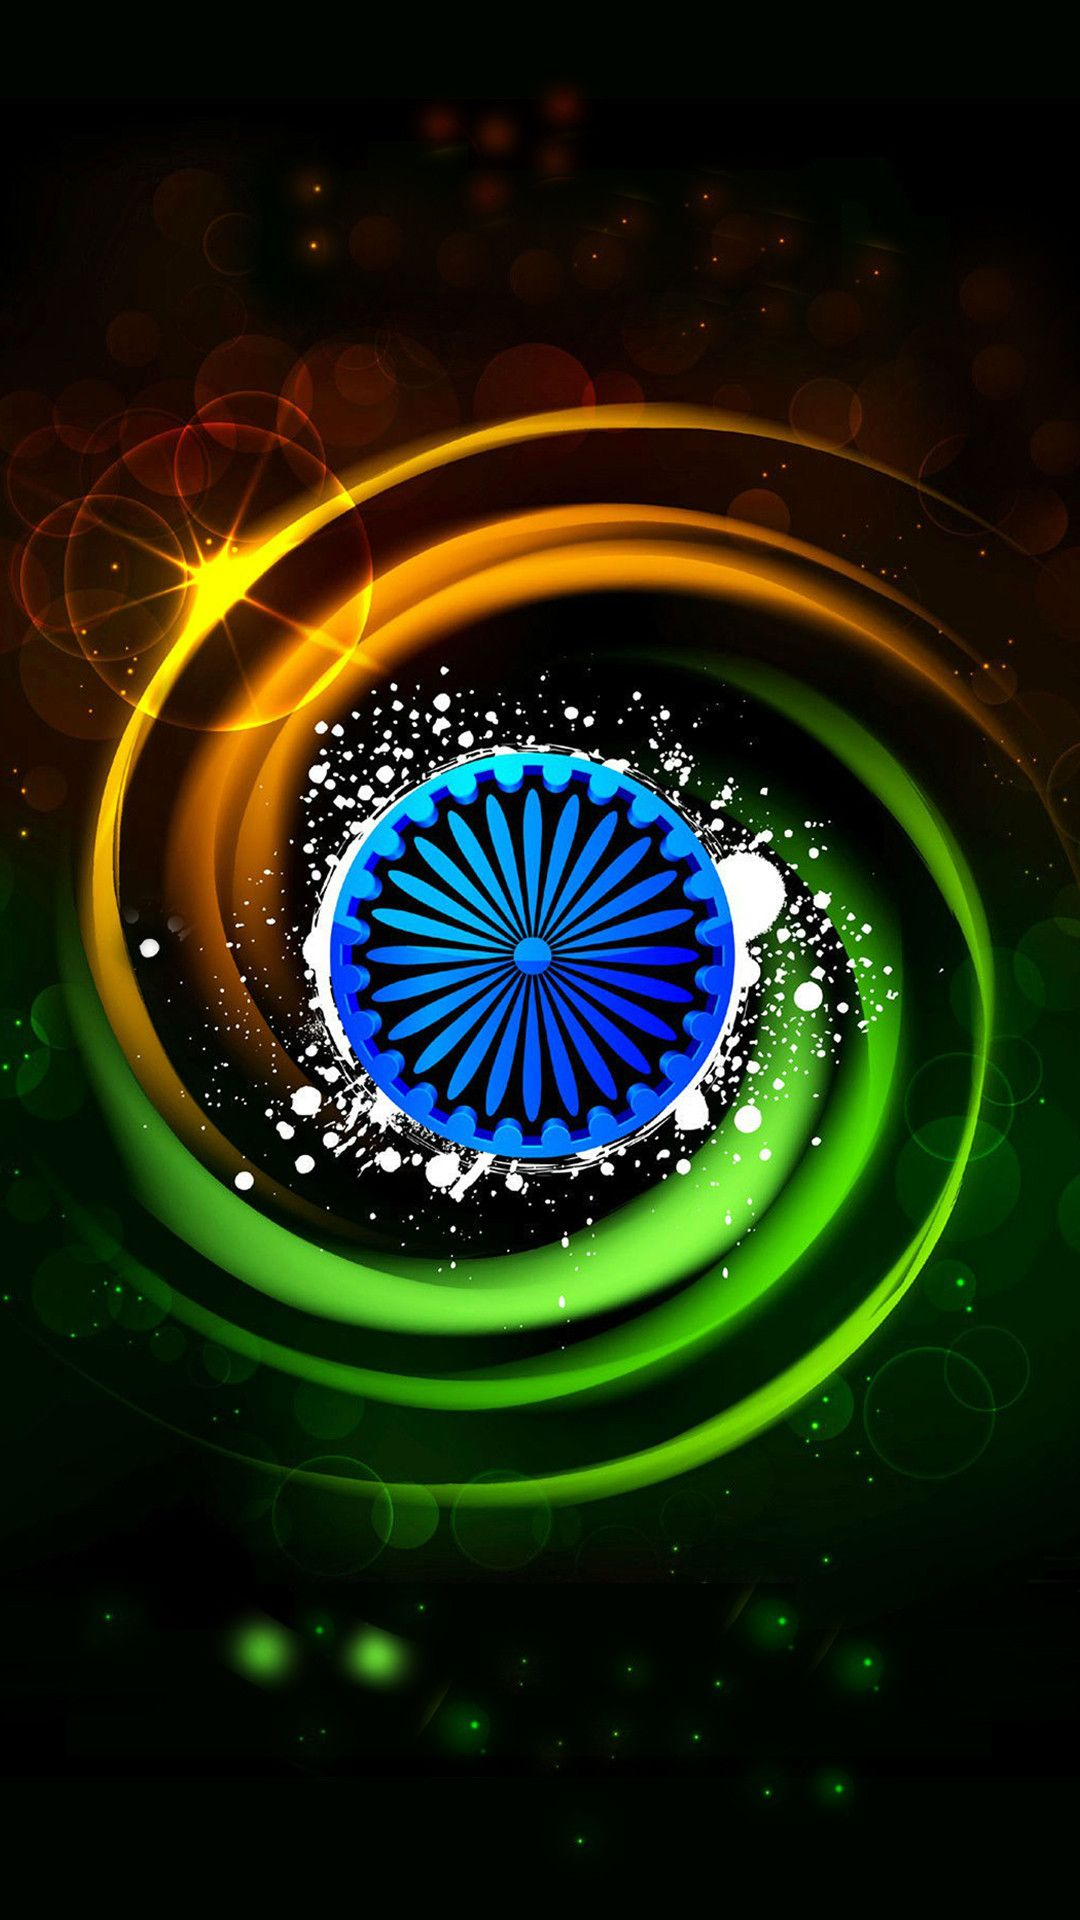 Indian flag wallpapers top free indian flag backgrounds wallpaperaccess - Indian flag 4k wallpaper ...